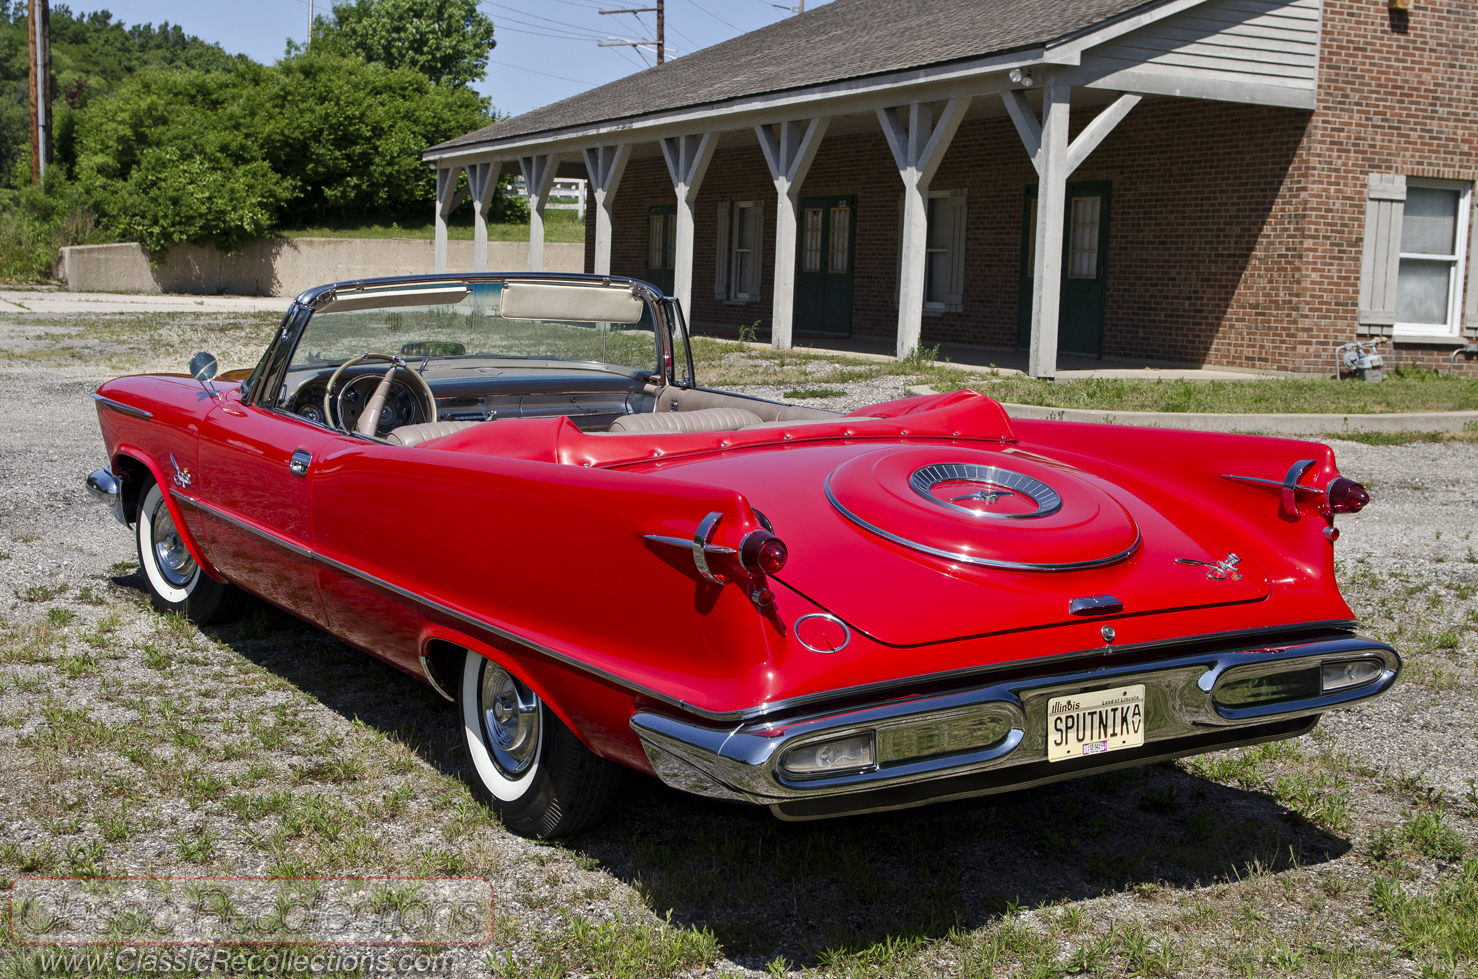 Feature 1958 Chrysler Imperial Crown Convertible